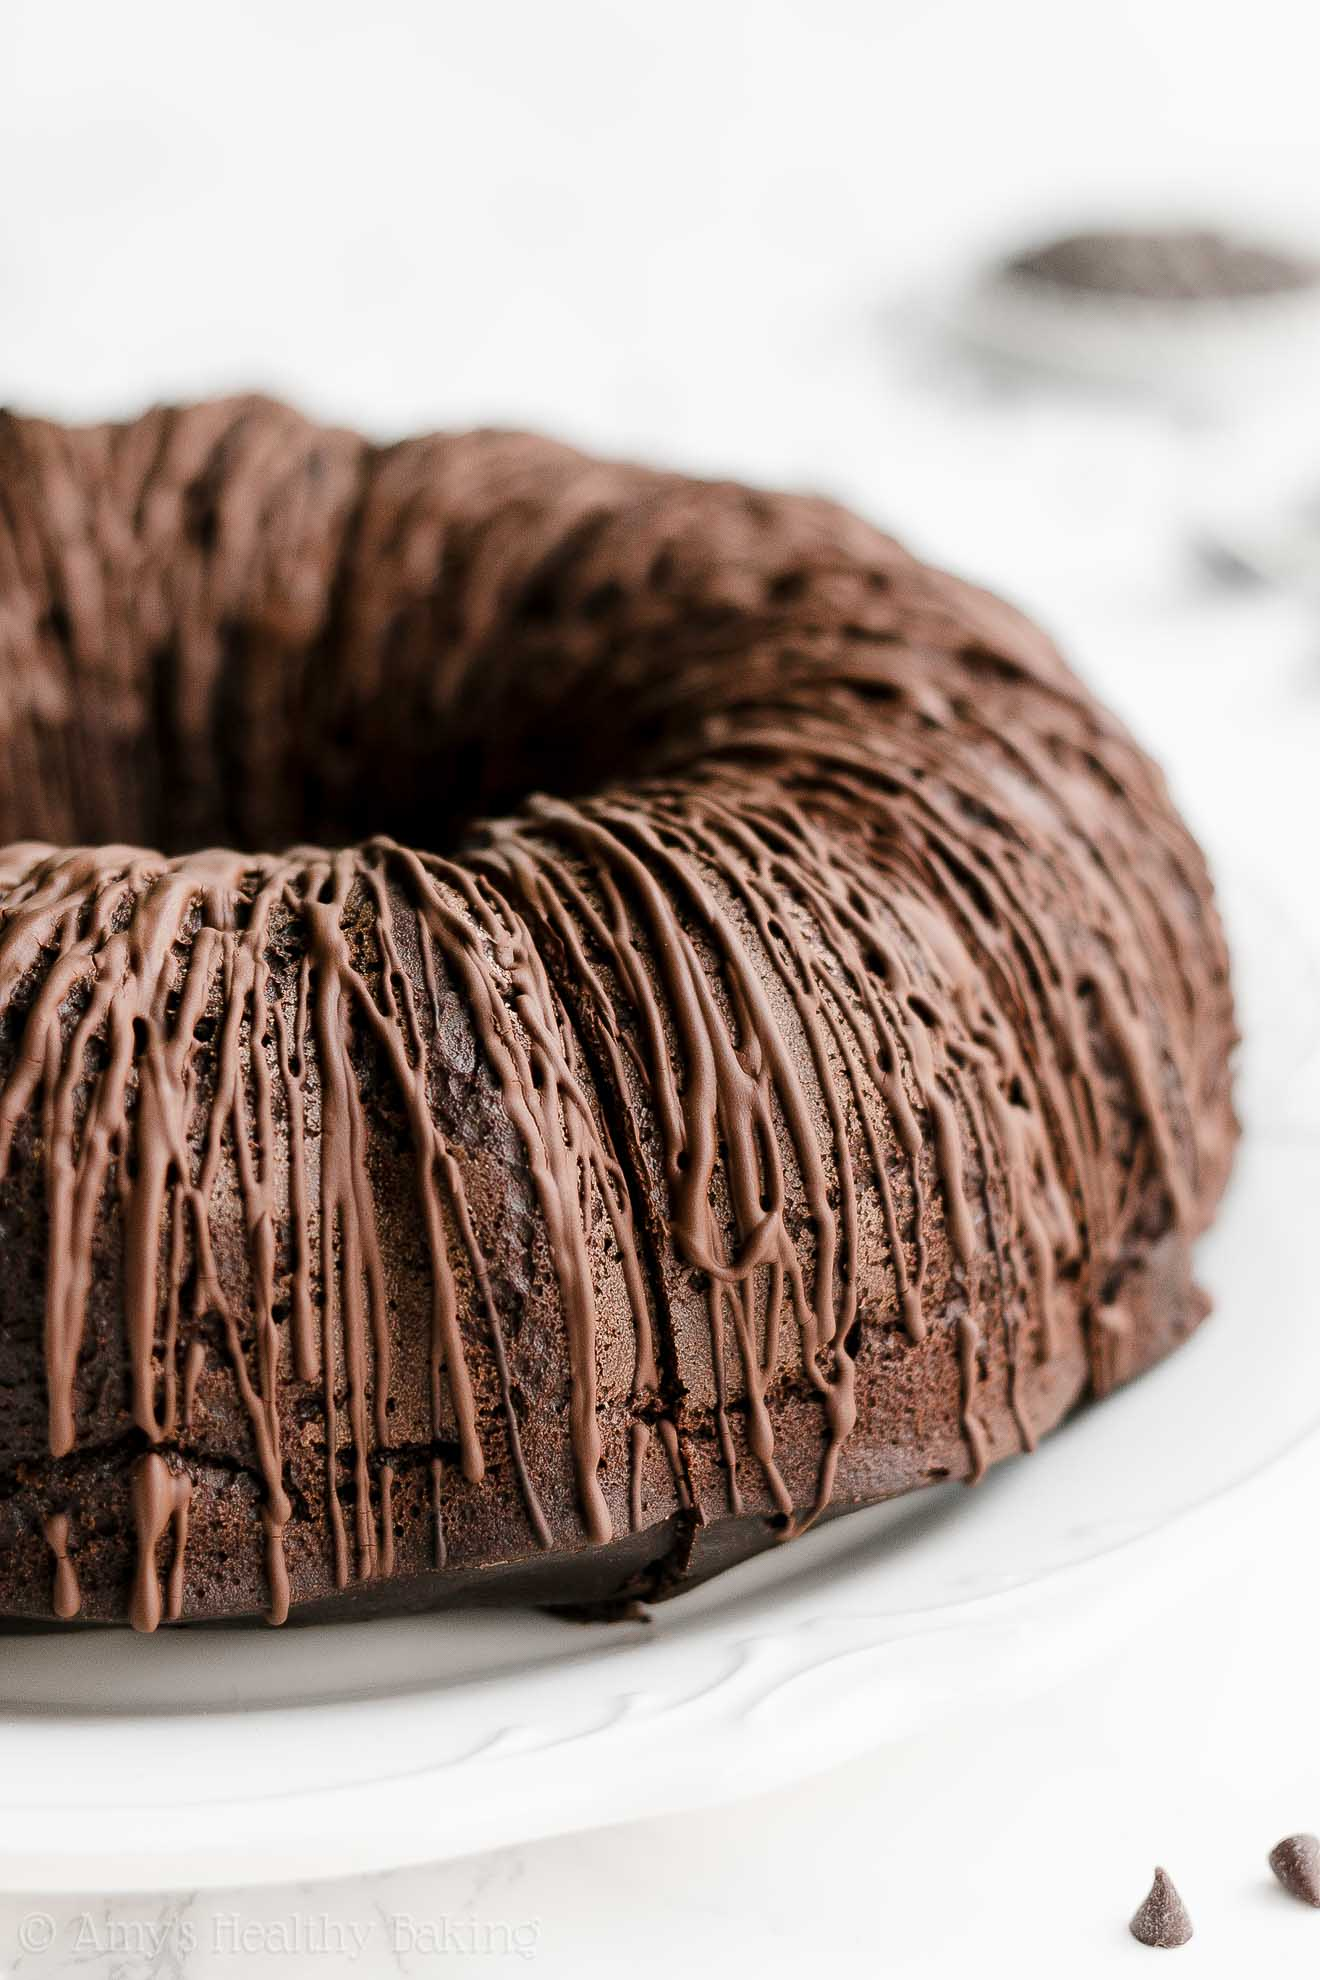 ULTIMATE Best Ever Easy Healthy Clean Eating Moist Chocolate Bundt Cake